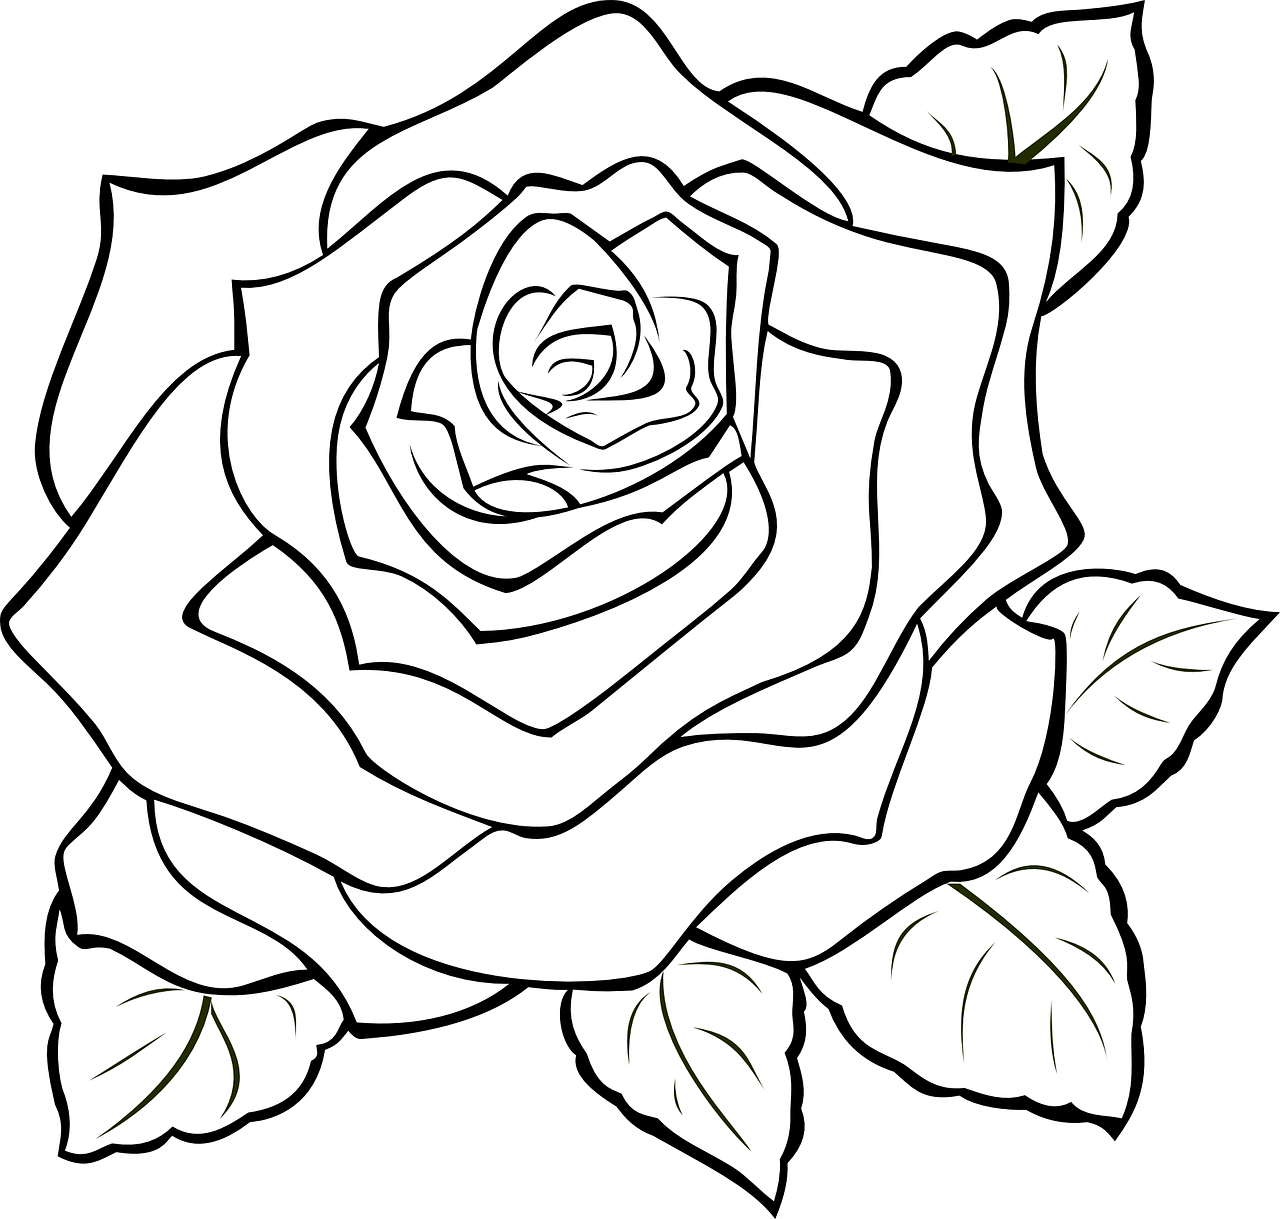 photo relating to Printable Pictures of Roses identify How toward produce drawing of rose: 14 cost-free printable rose stencils